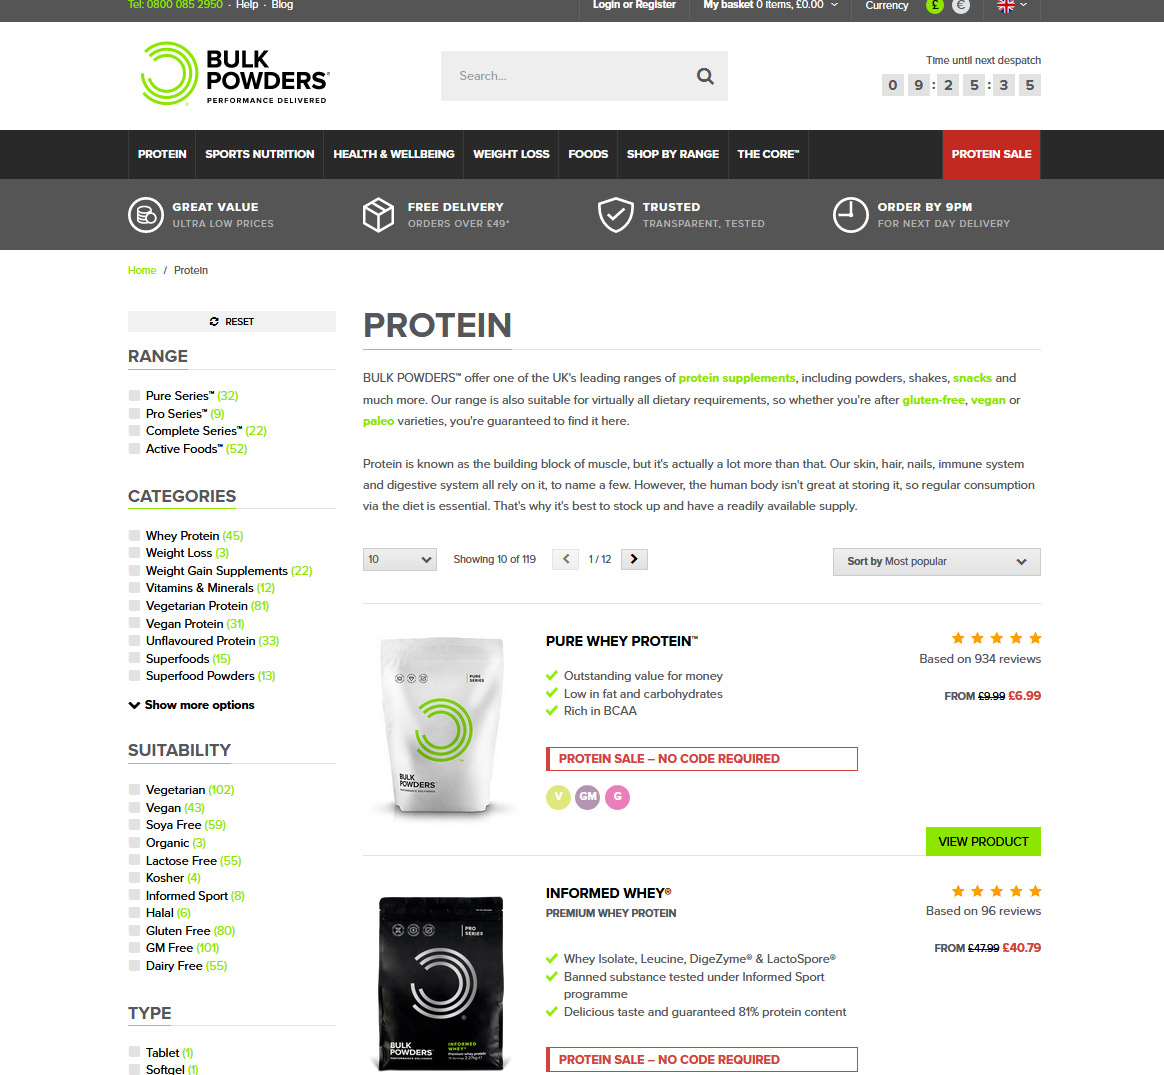 Magento-based sports and fitness store